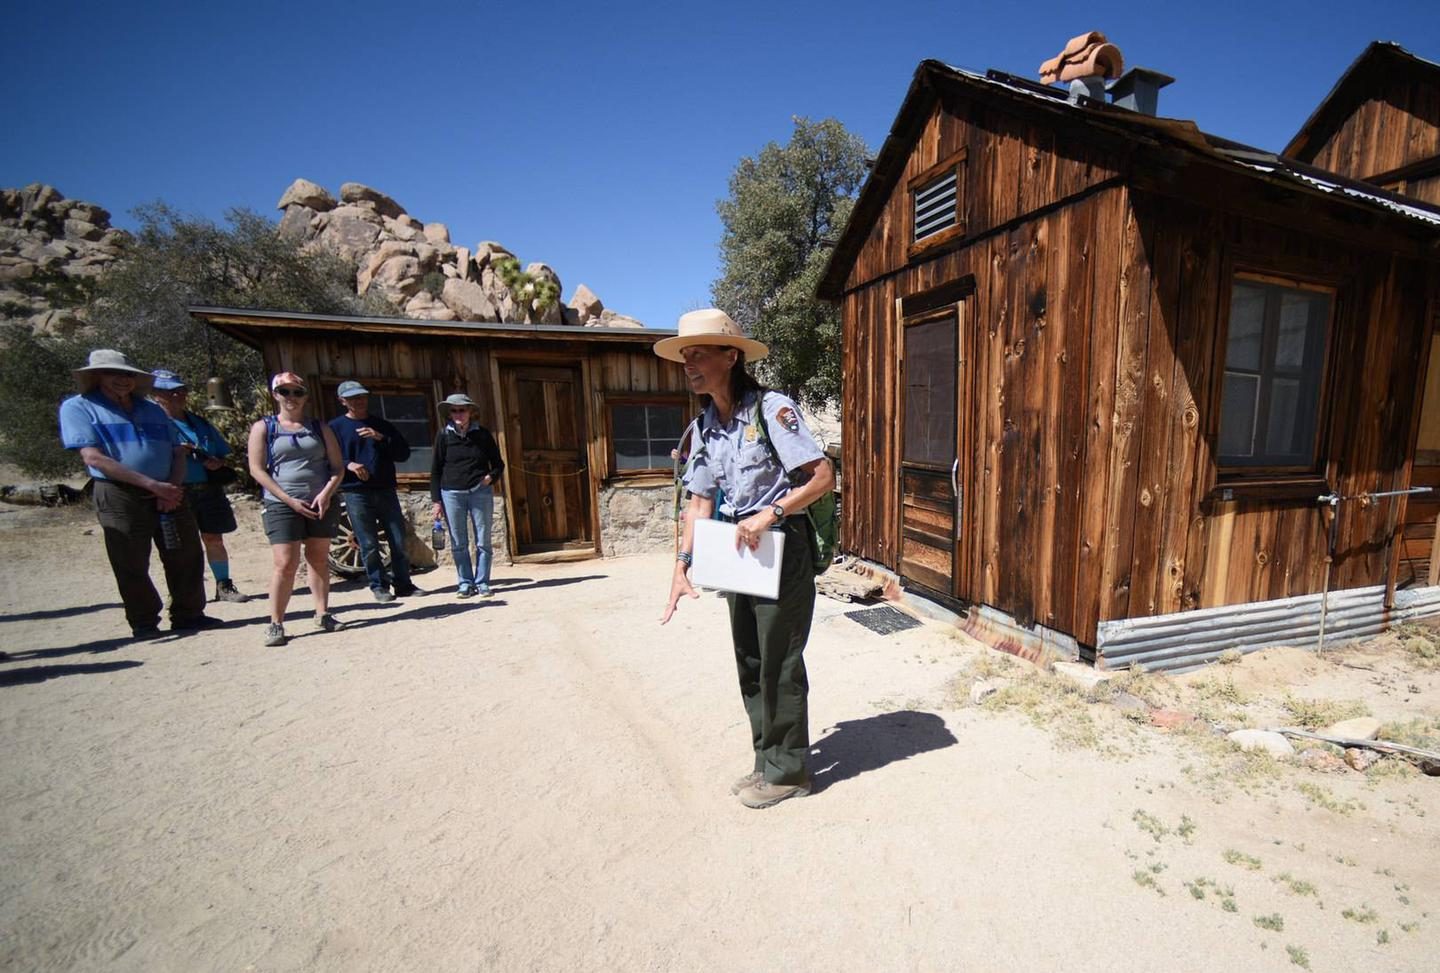 A woman wearing a NPS uniform is addressing a group of people in front of a historic ranch.Tours at Keys Ranch give visitors a unique experience to learn about the Keys family and their survival in a harsh desert environment.